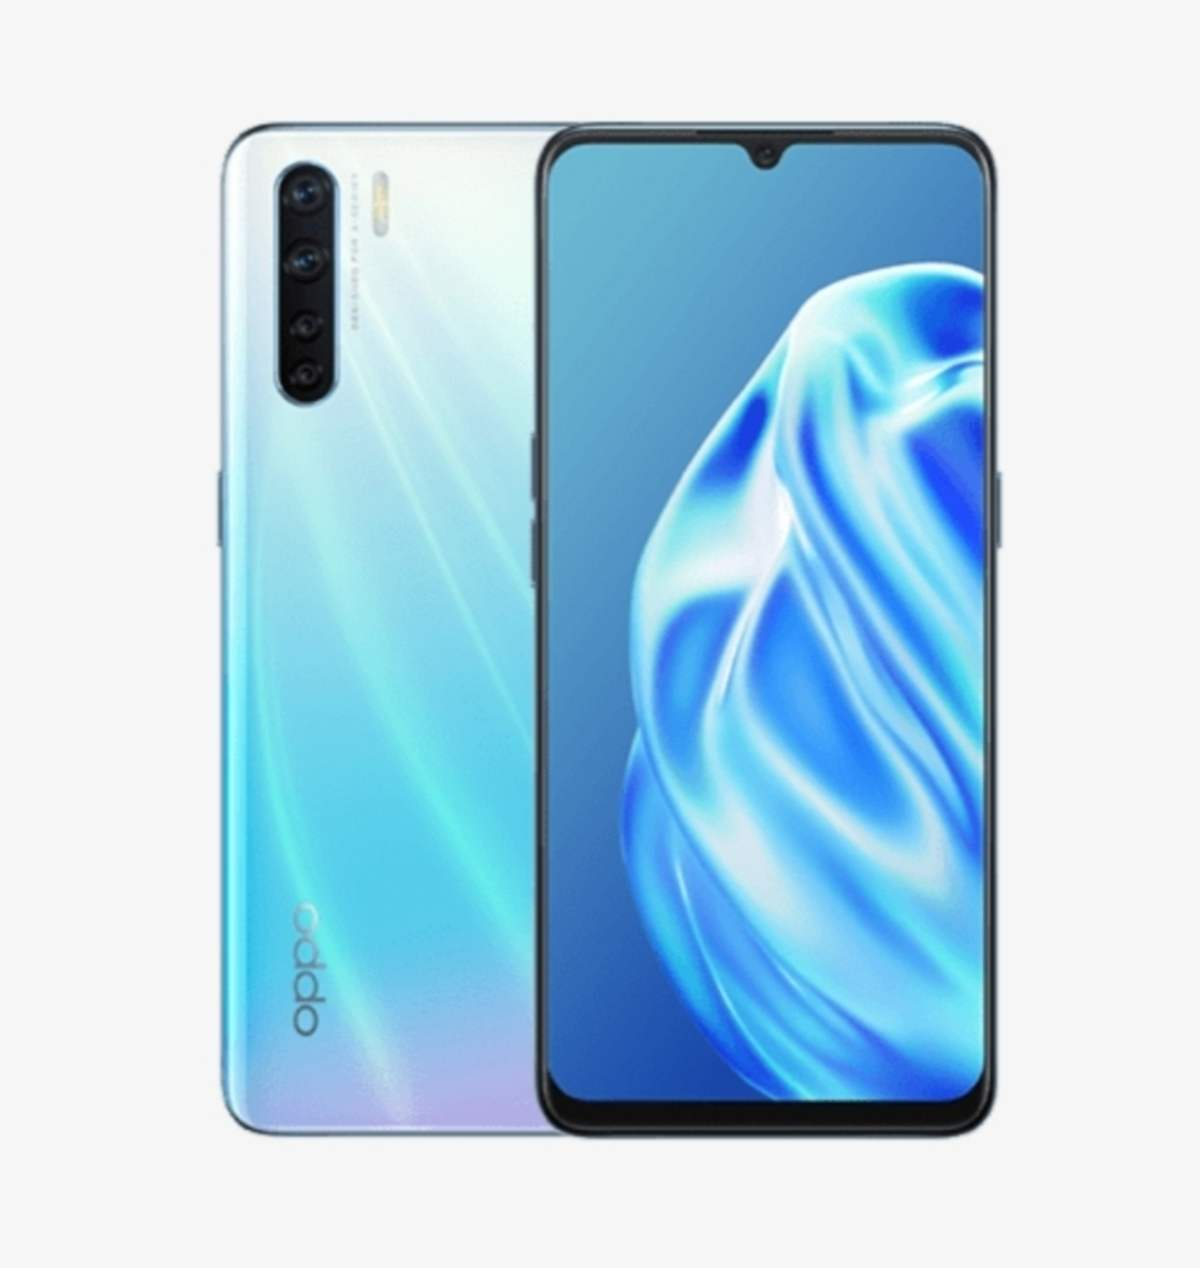 Oppo A91, Oppo A91 price in Nigeria, the price of Oppo a91 in Nigeria, how much is Oppo A91 price in Nigeria, where to buy oppo A91 In Nigeria, Oppo A19 specs and price in Nigeria, Oppo A91 price, Oppo A91 specs, Oppo A91 best price in Jumia Nigeria